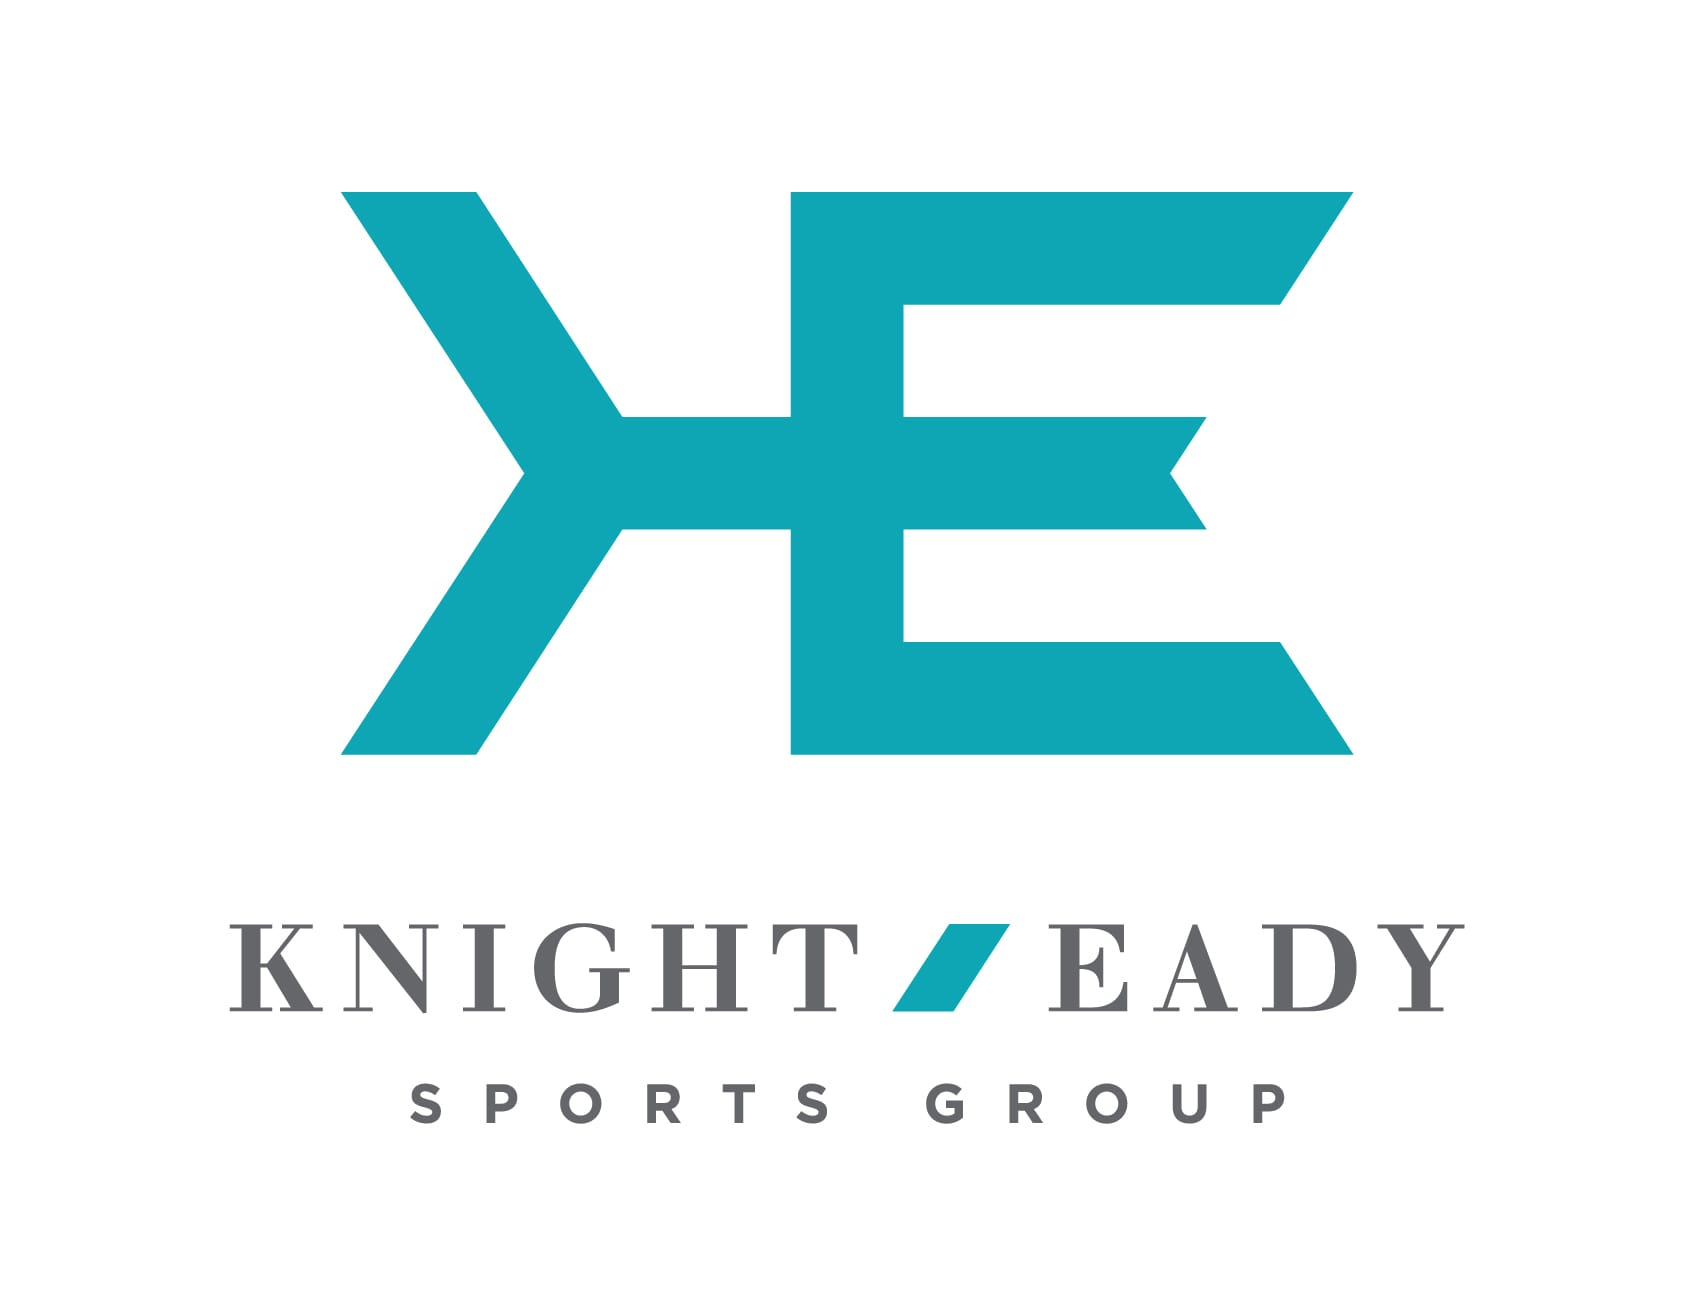 Knight Eady Sports Group